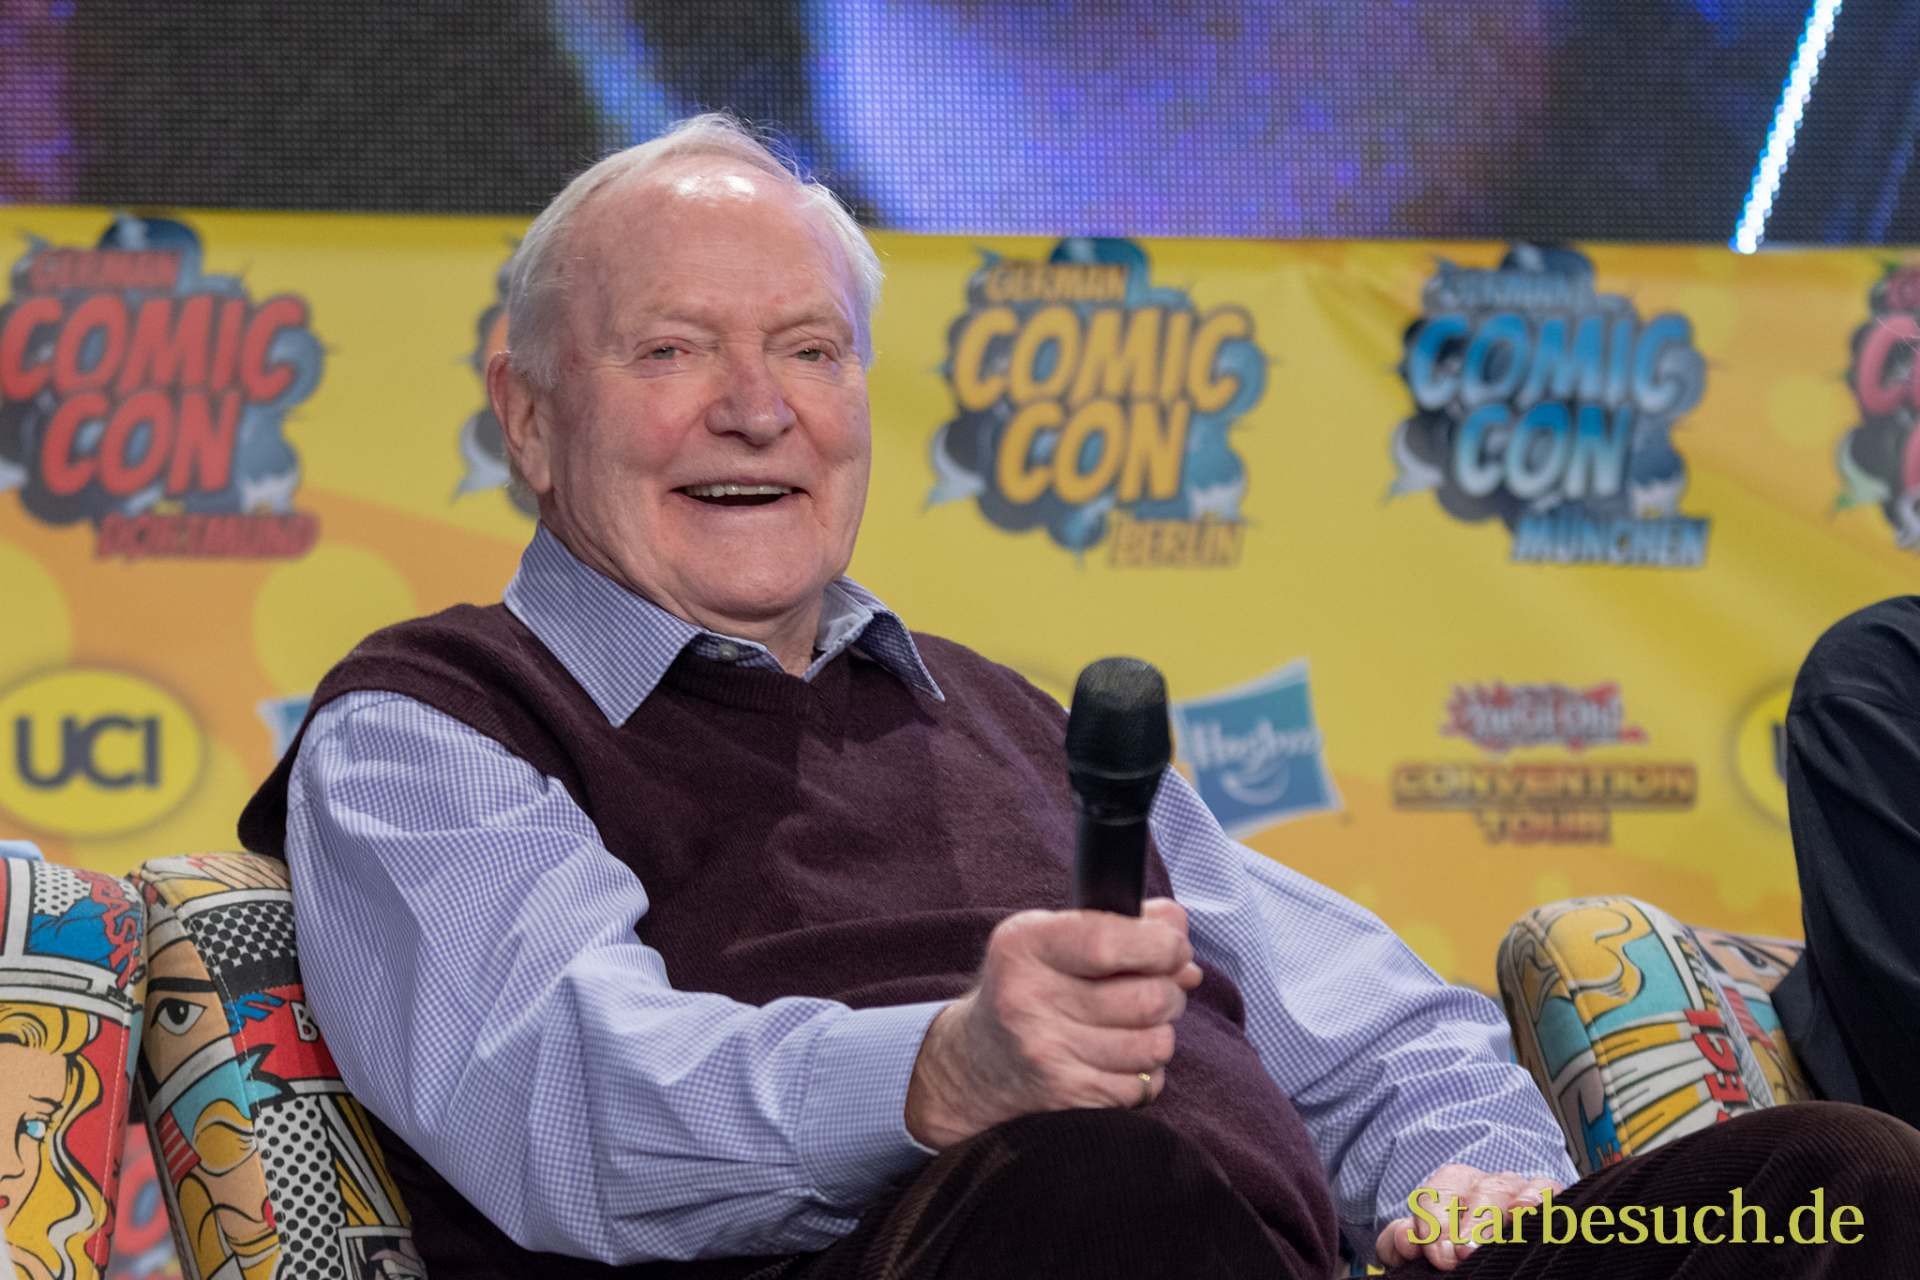 DORTMUND, GERMANY - December 1st 2018: Julian Glover (*1935, English actor) at German Comic Con Dortmund, a two day fan convention